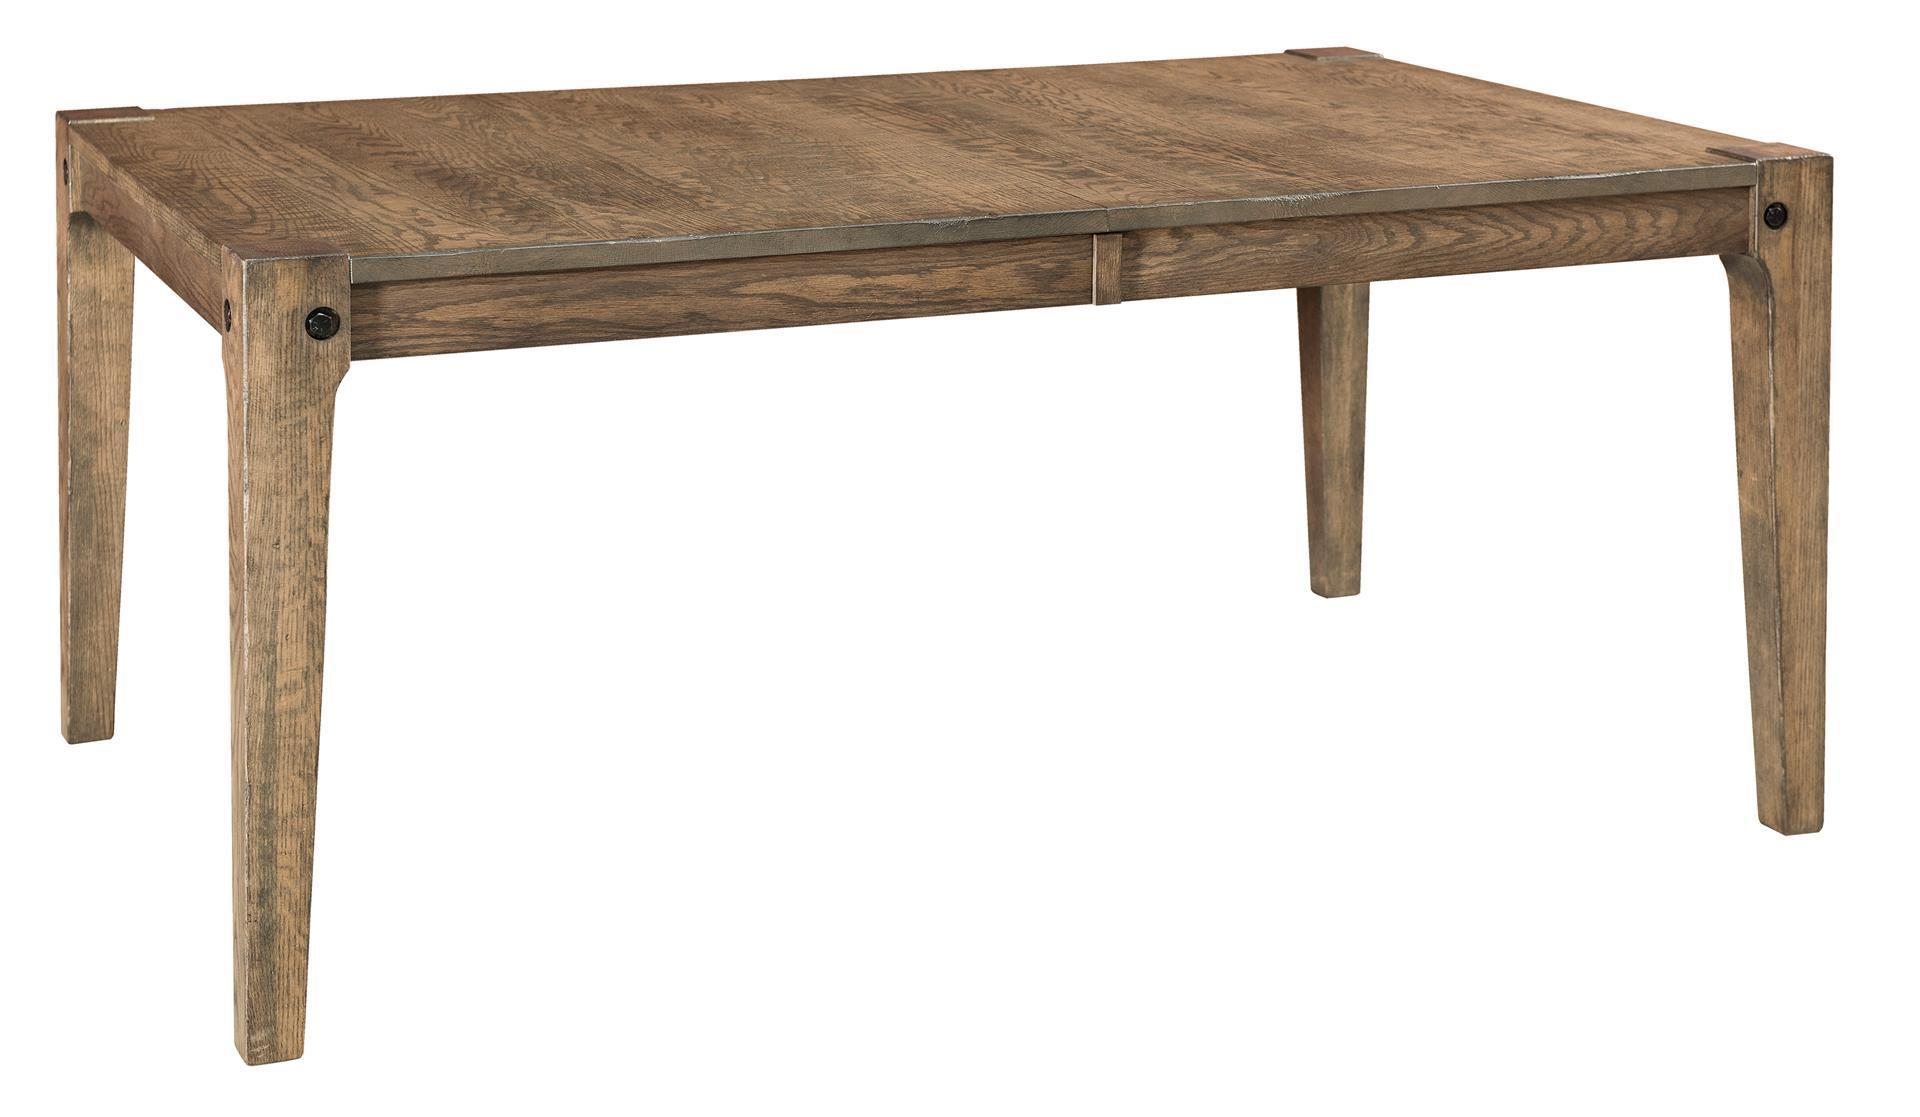 Durango Leg Dining Table From